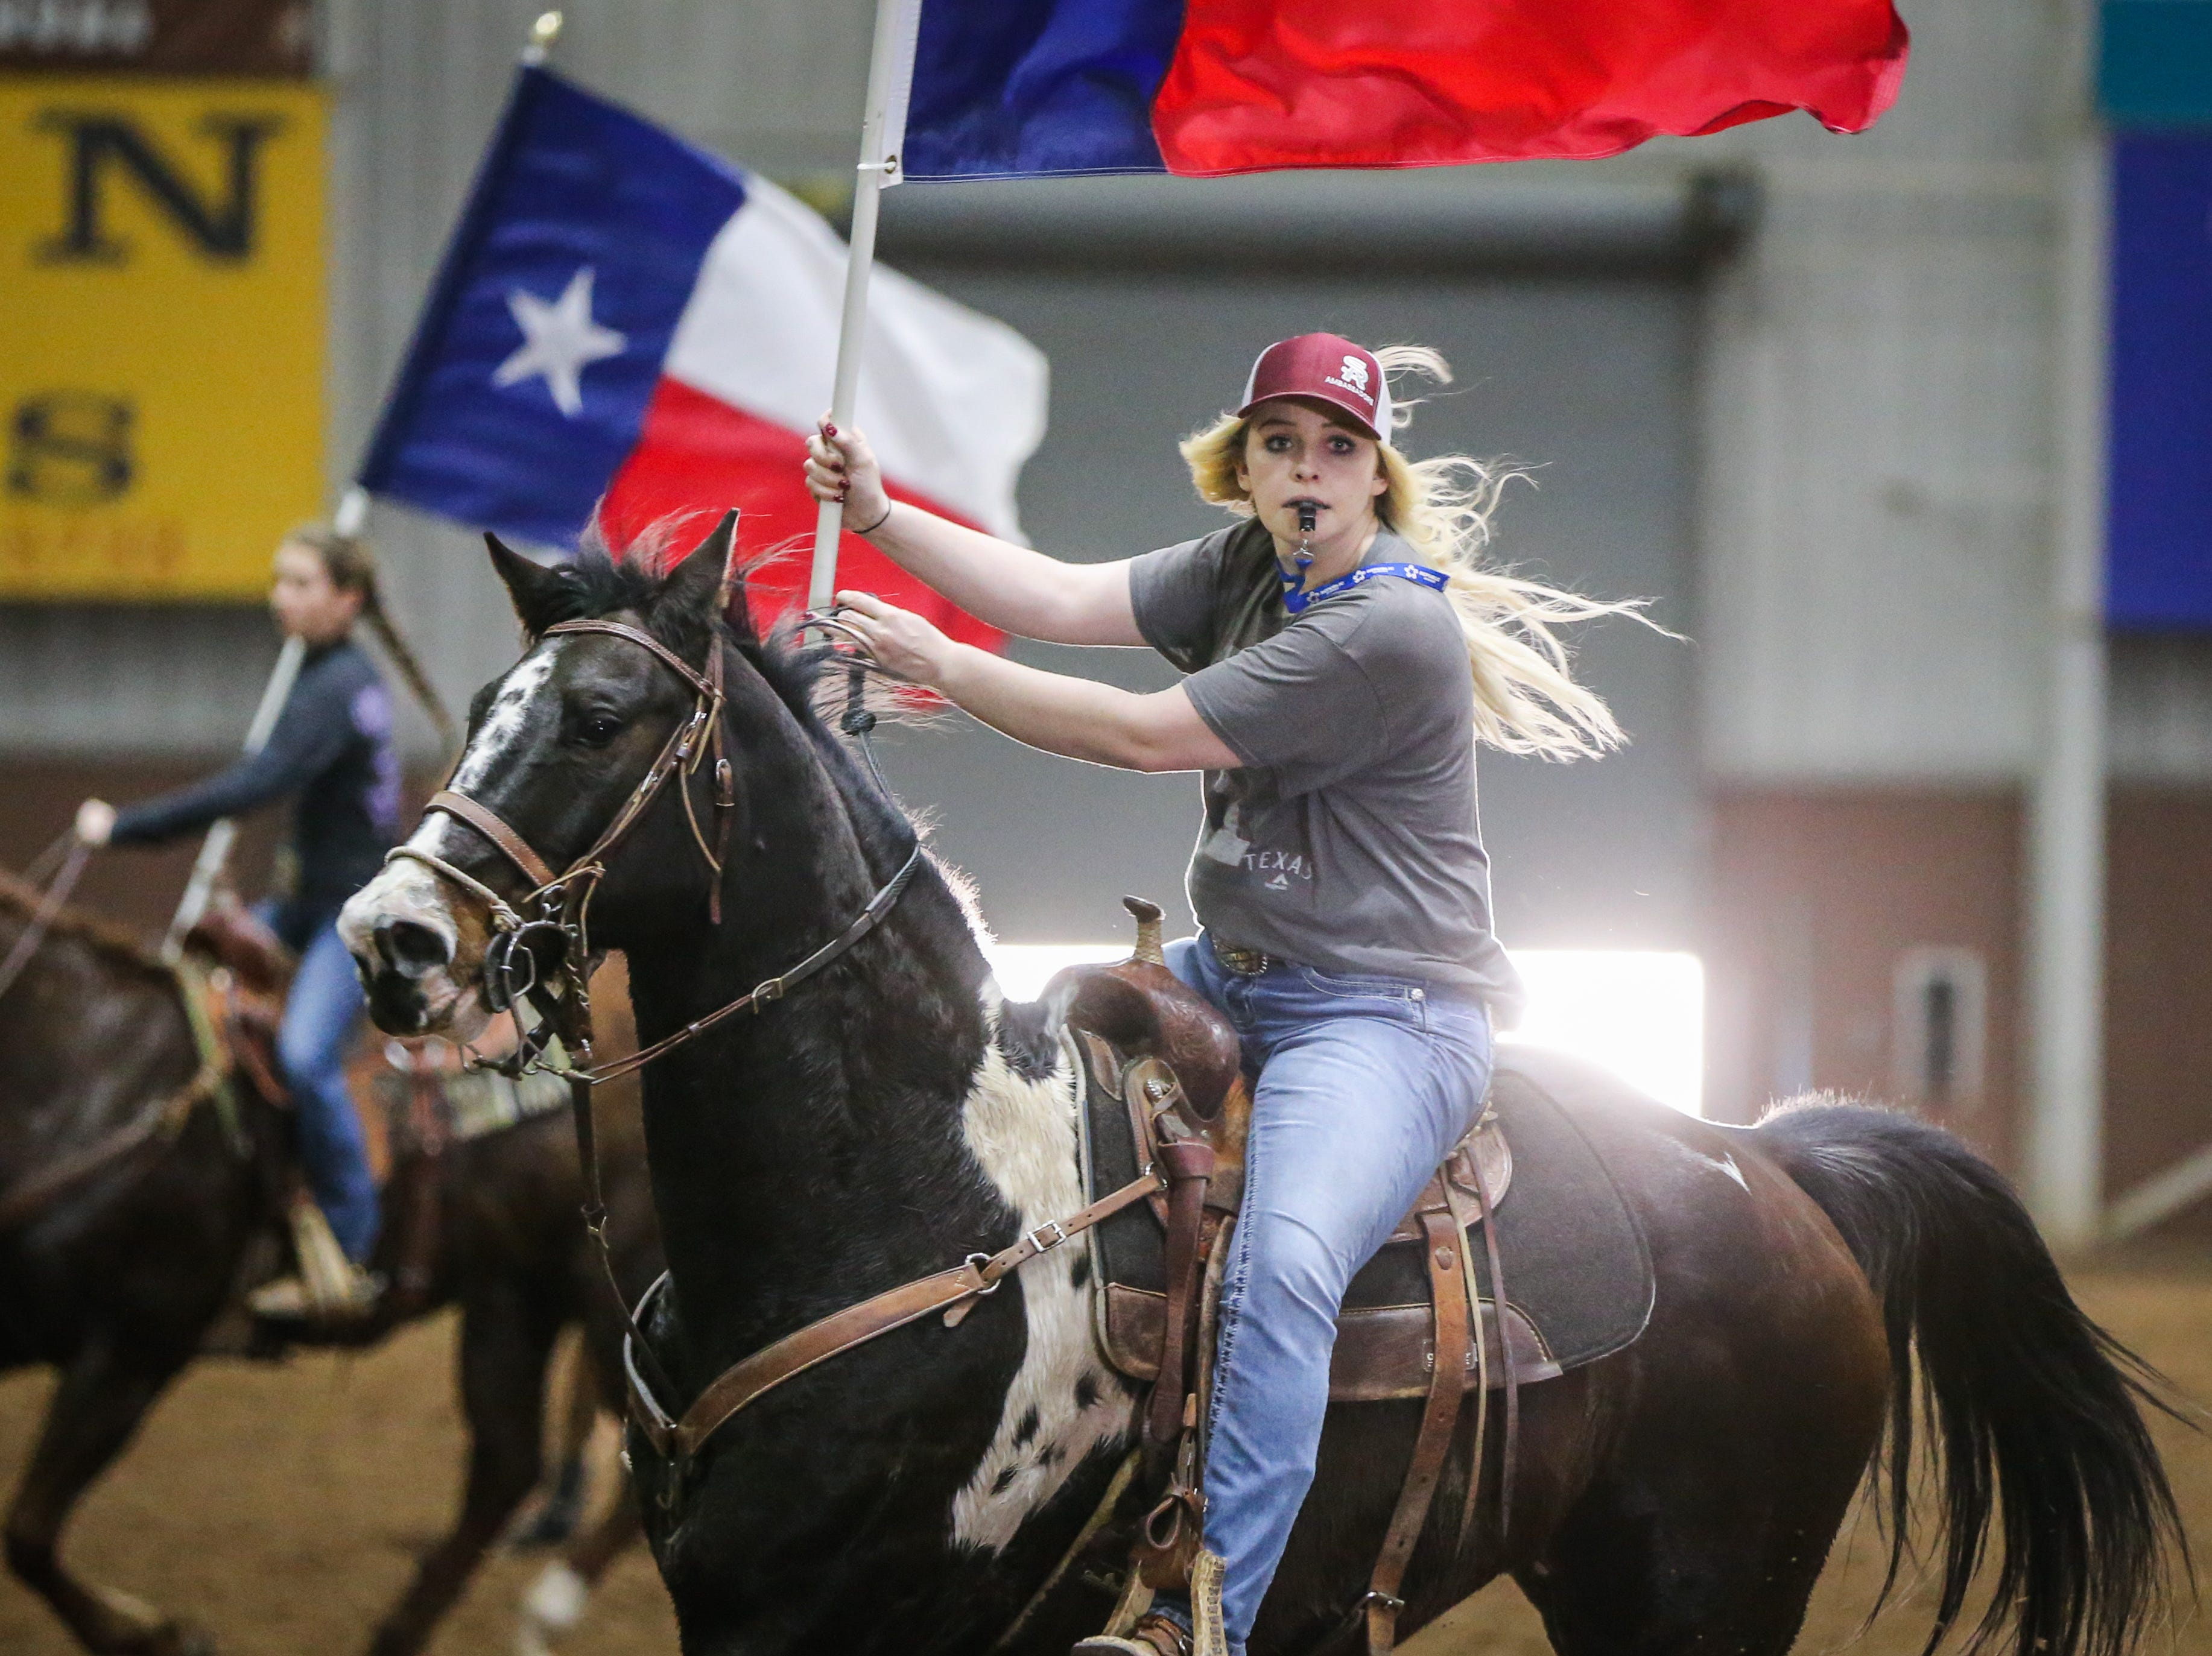 Lauren Feller leads the San Angelo Ambassadors in a drill Saturday, Jan. 26, 2019, in the Spur Arena. The team performs during the San Angelo Stock Show and Rodeo.